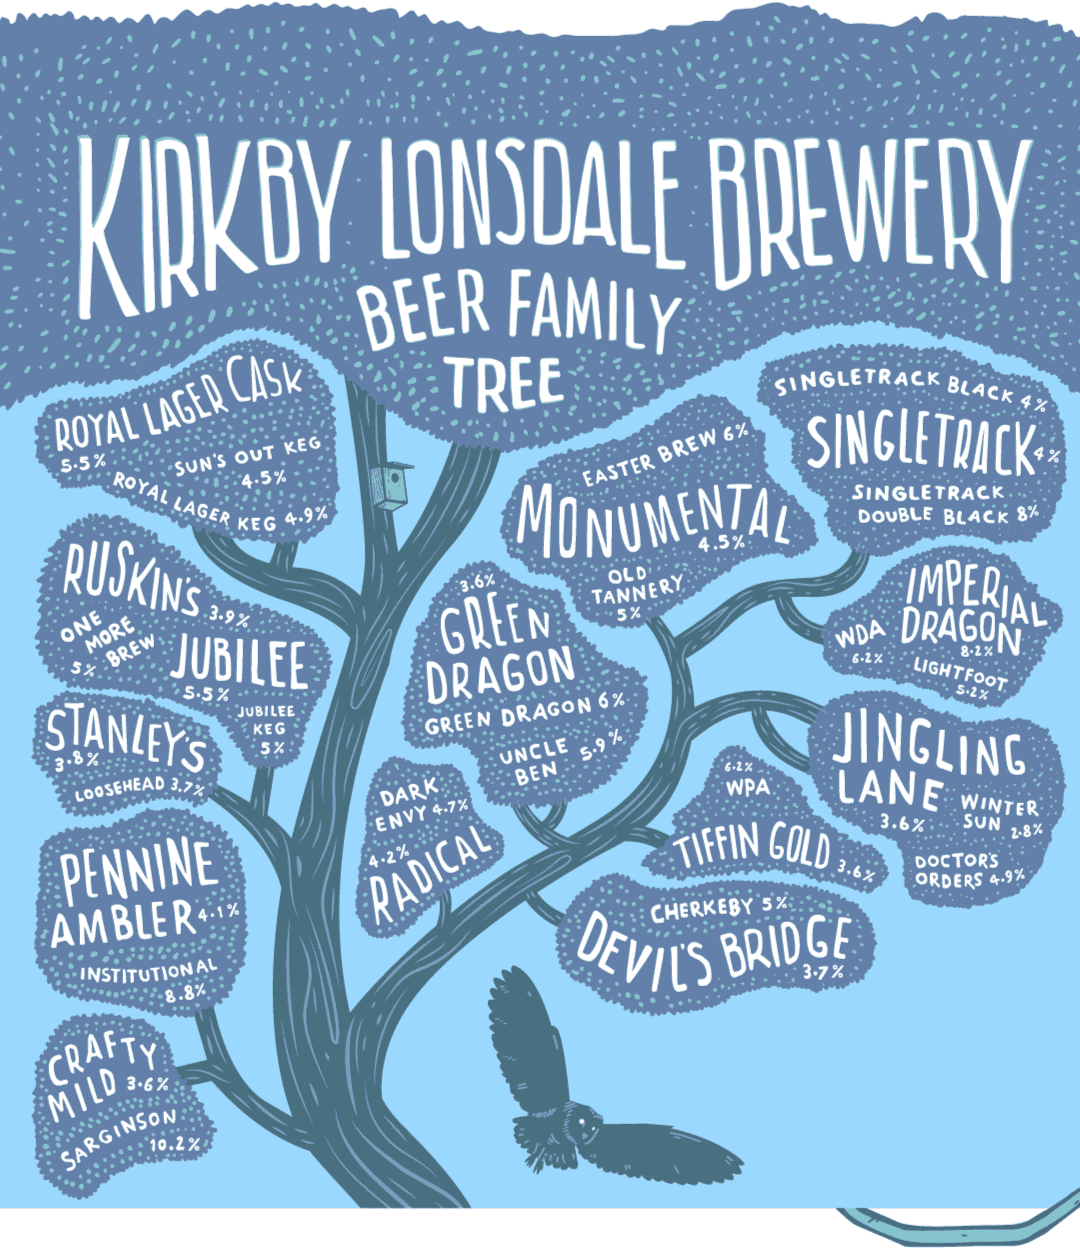 Kirkby Lonsdale Brewery Beer Family Tree Illustration